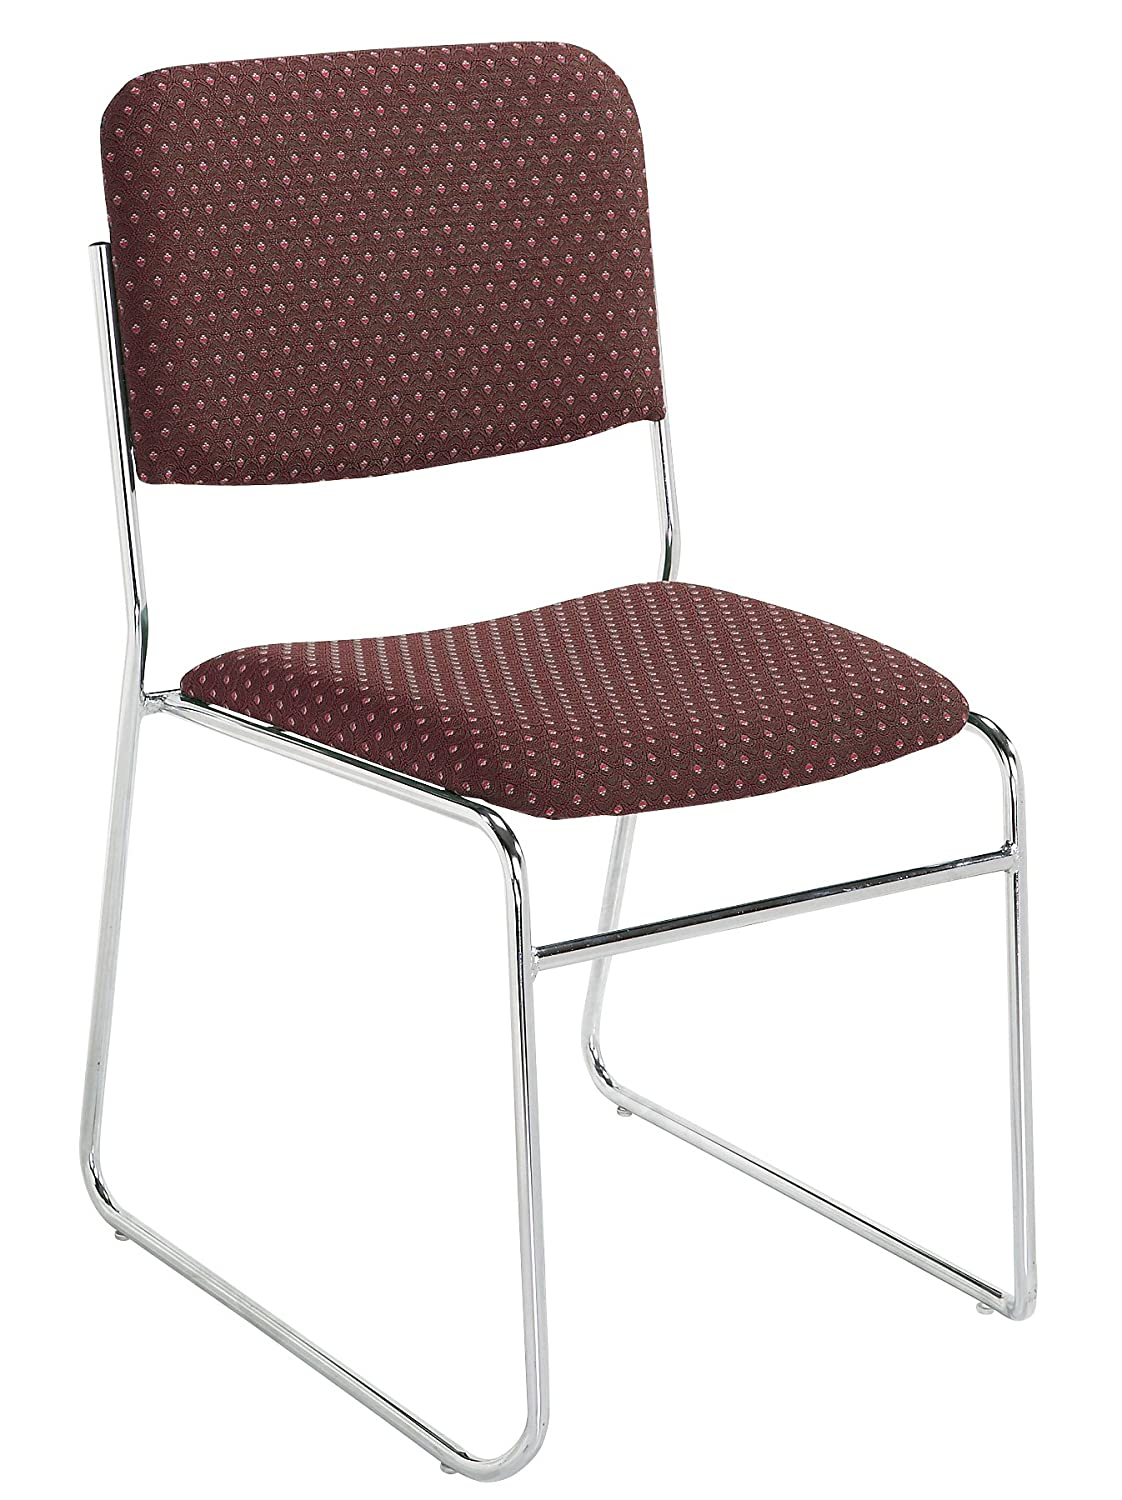 NPS 8668 Fabric-Upholstered Sled Base Signature Stack Chair, 300-Pound Weight Capacity, 19-Inch Length x 21-Inch Width x 33-Inch Height, Diamond Burgundy National Public Seating